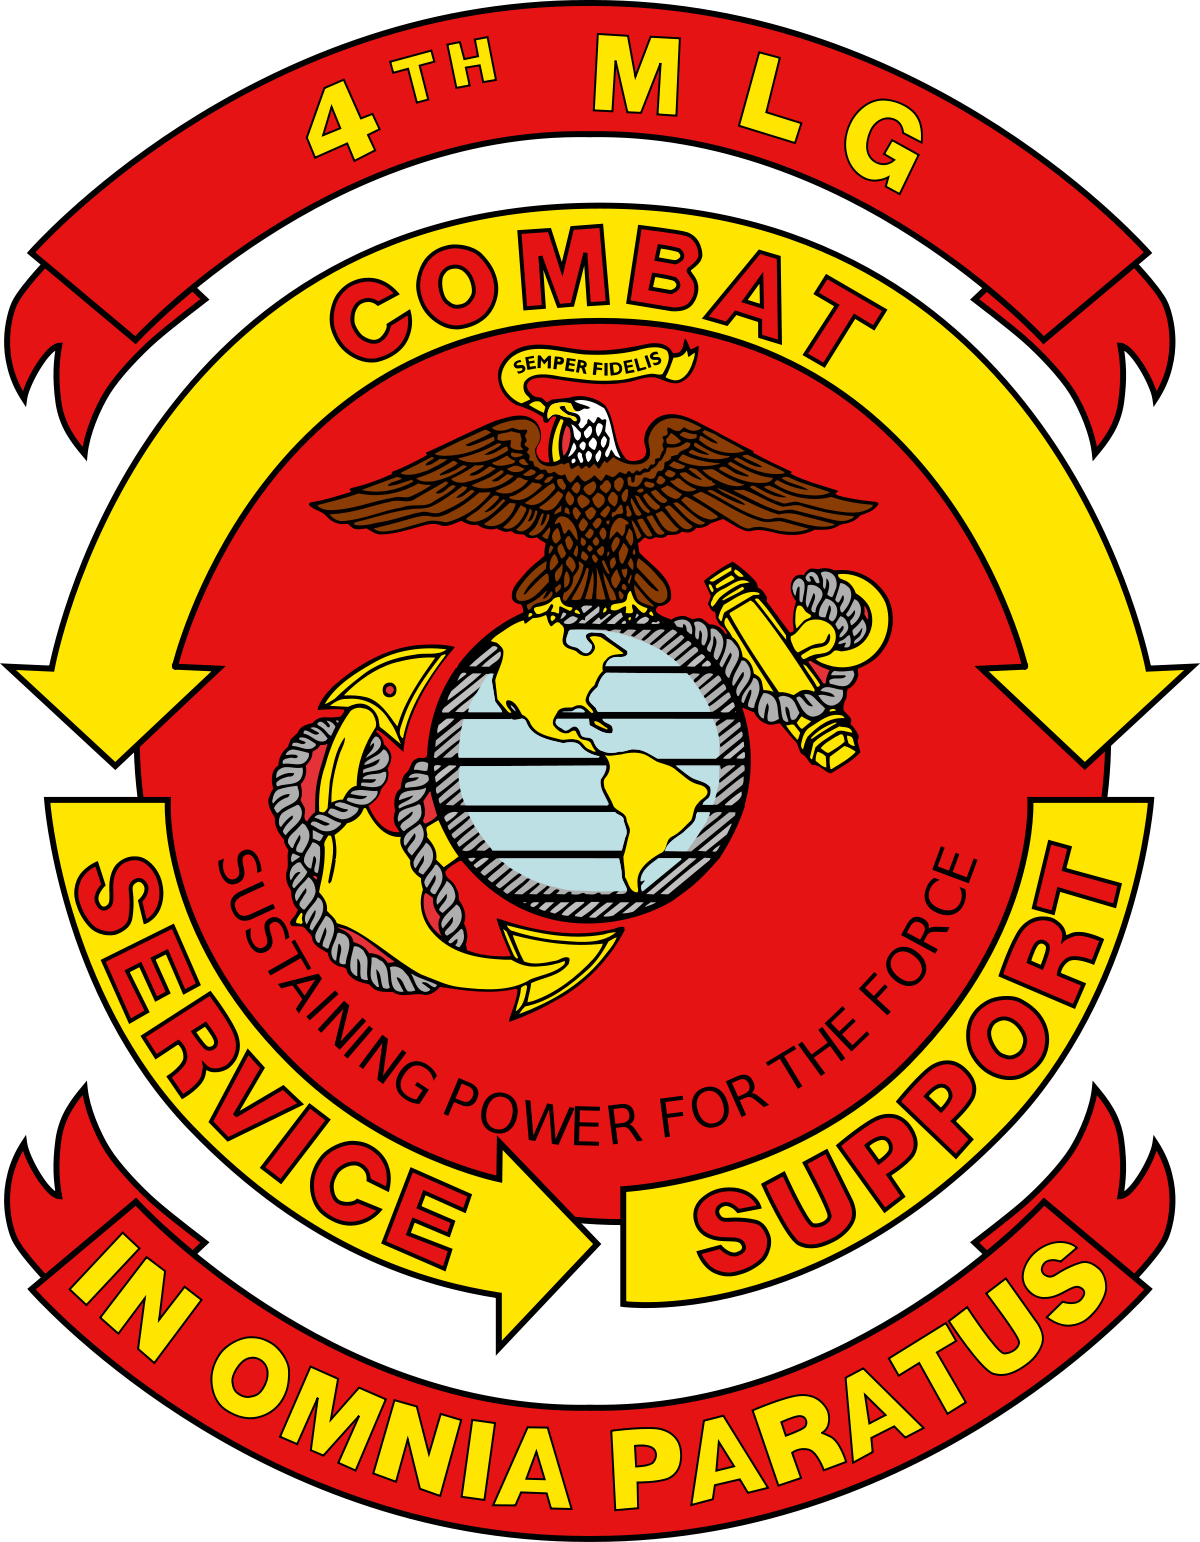 Usmc svg. Png and graphics transparent